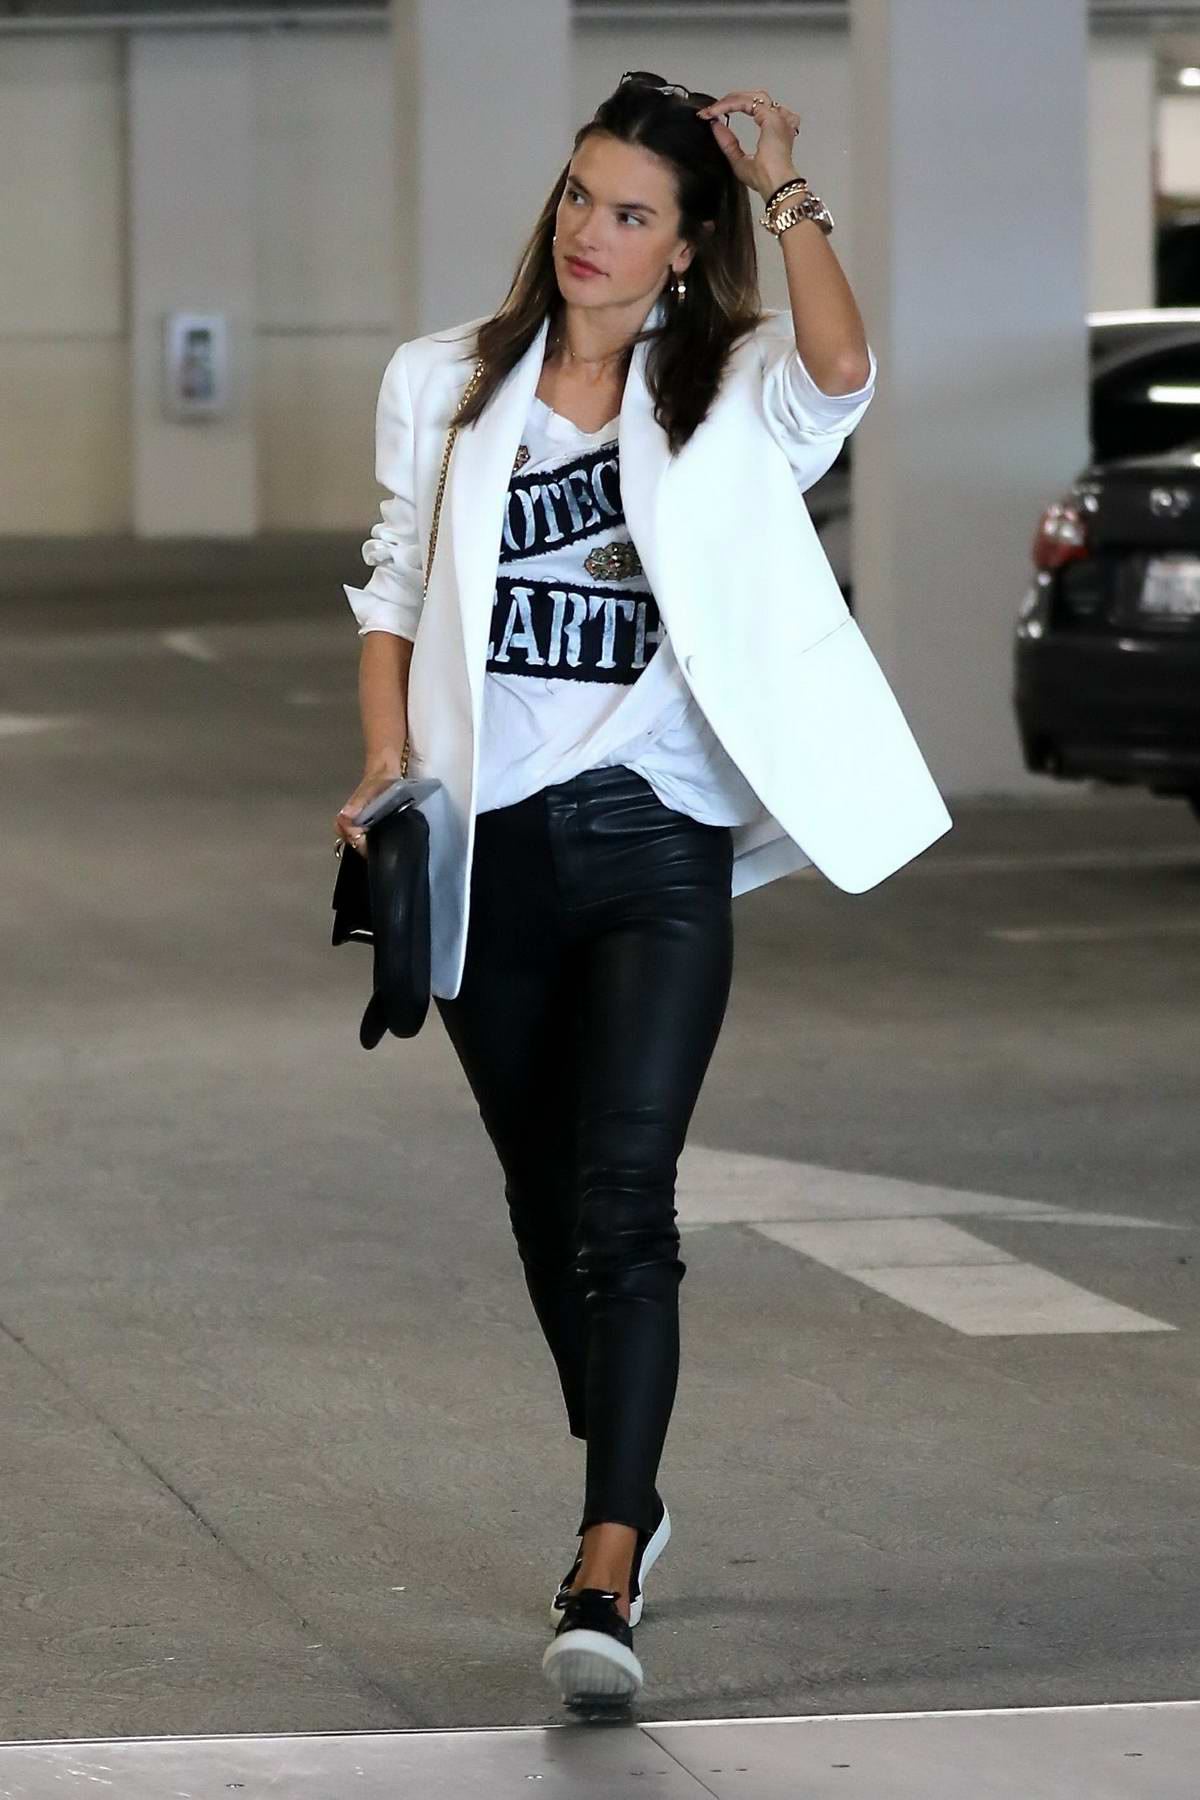 Alessandra Ambrosio looks stylish in a white blazer and black leather pants as she grabs lunch with a friend at Eataly in Los Angeles